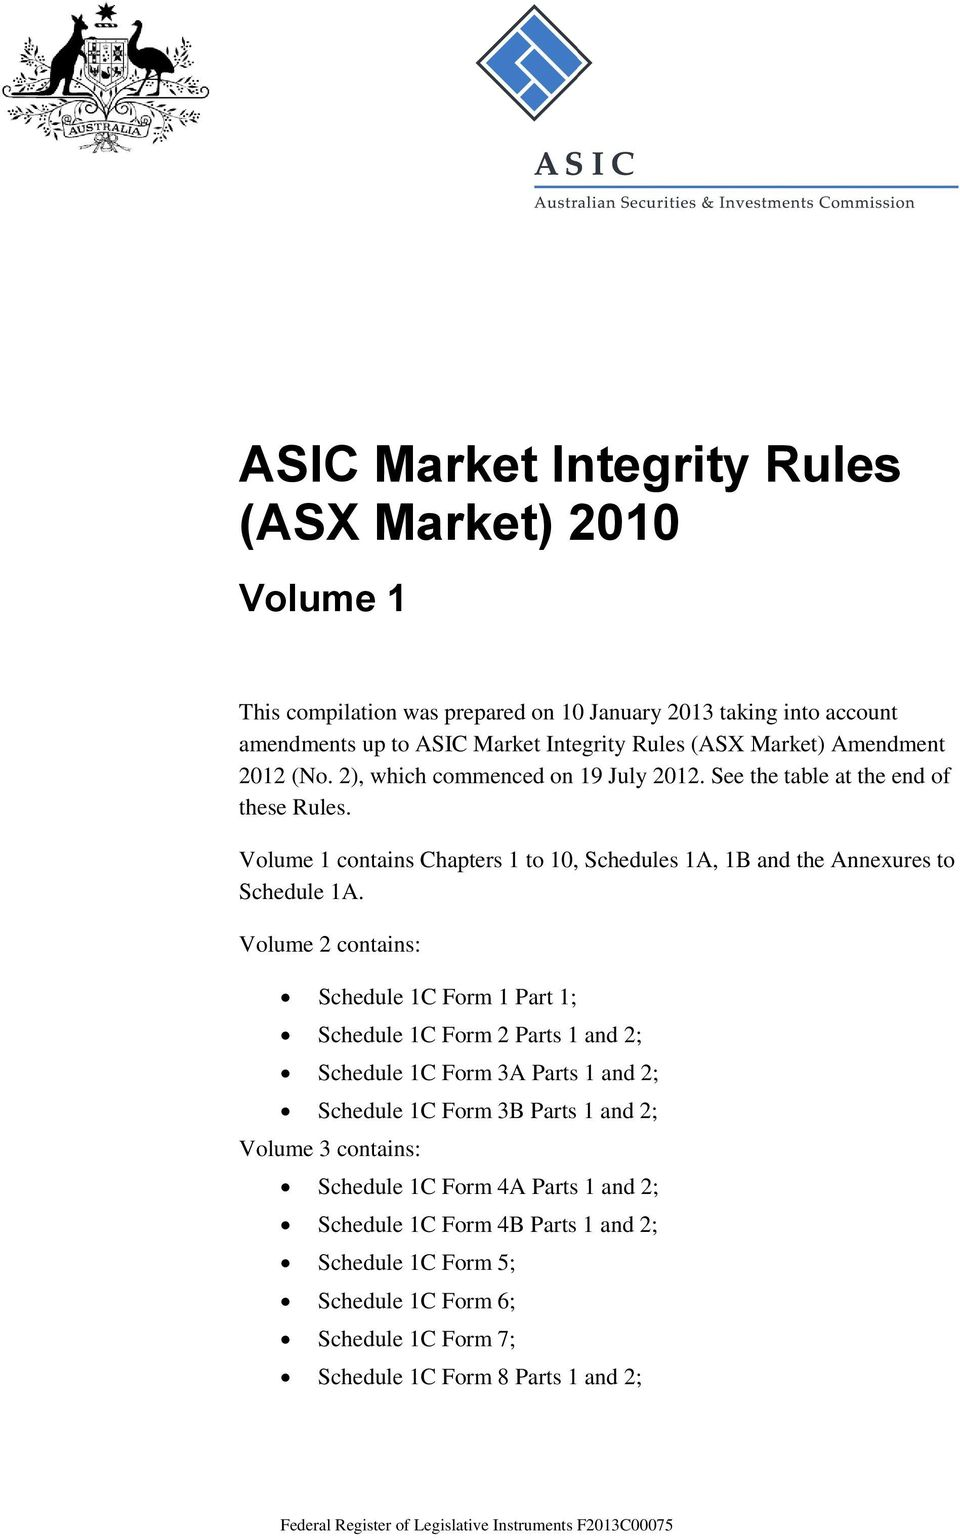 Volume 1 contains Chapters 1 to 10, Schedules 1A, 1B and the Annexures to Schedule 1A.